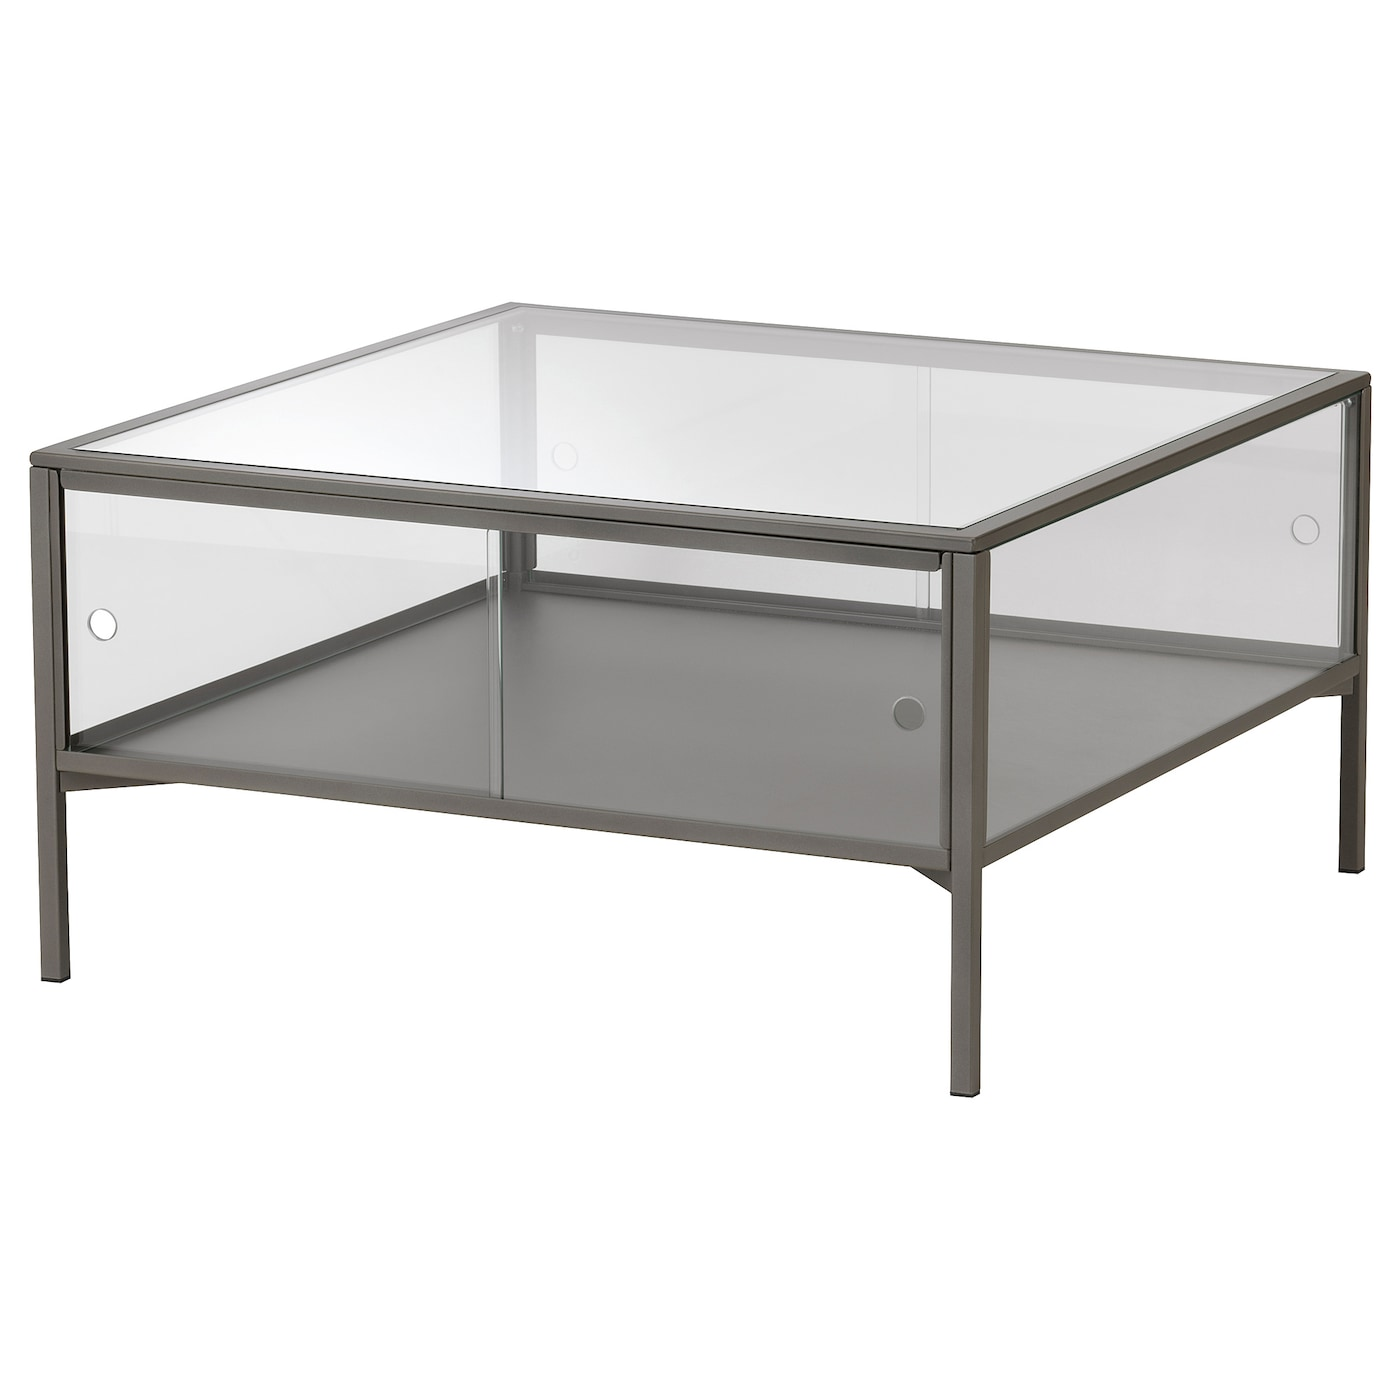 Ikea Sammanhang Coffee Table The Top In Tempered Gl Is Stain Resistant And Easy To